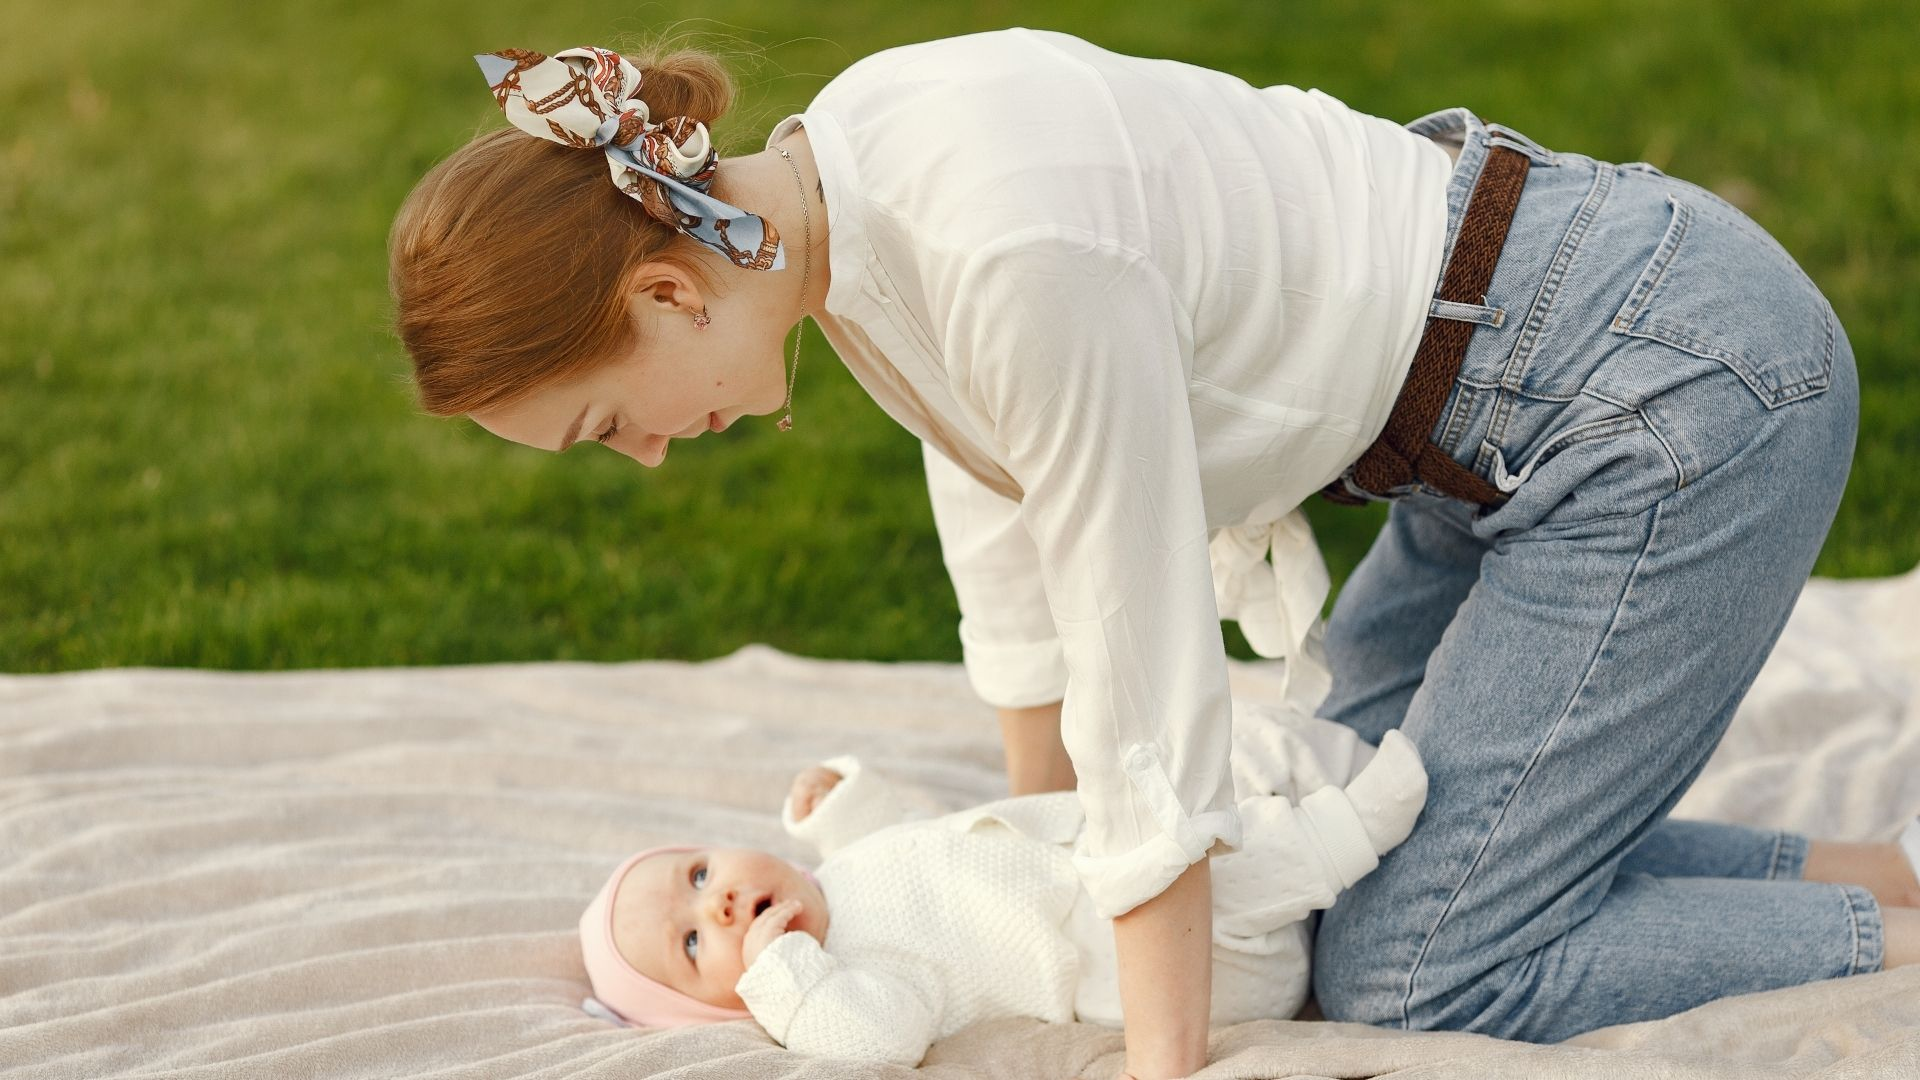 picture of a woman wearing mom jeans playing with her baby.